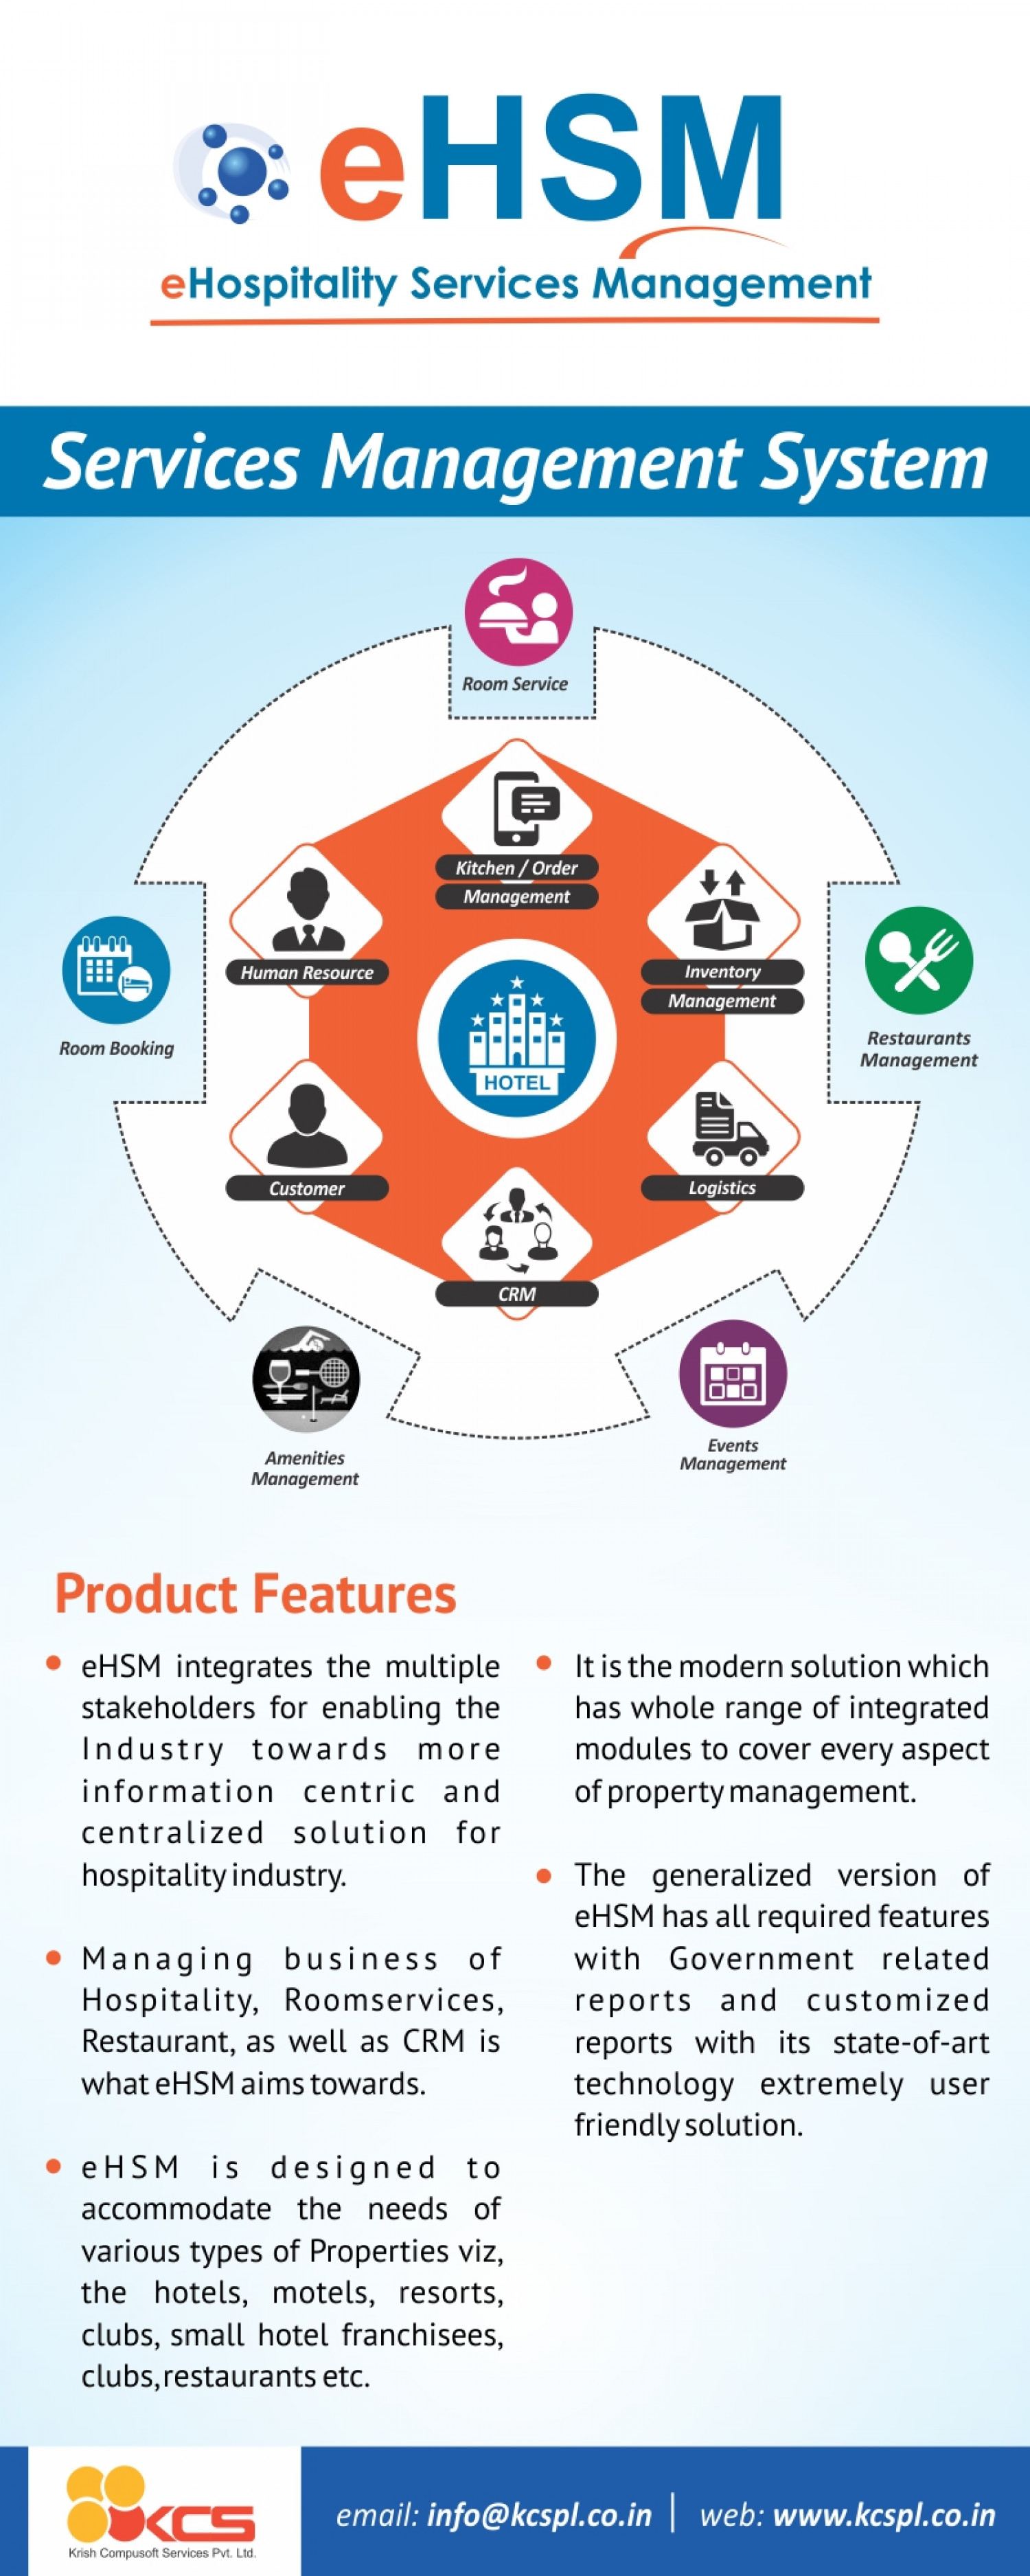 KCSITGlobal : Information centric and centralized solution for hospitality industry Infographic